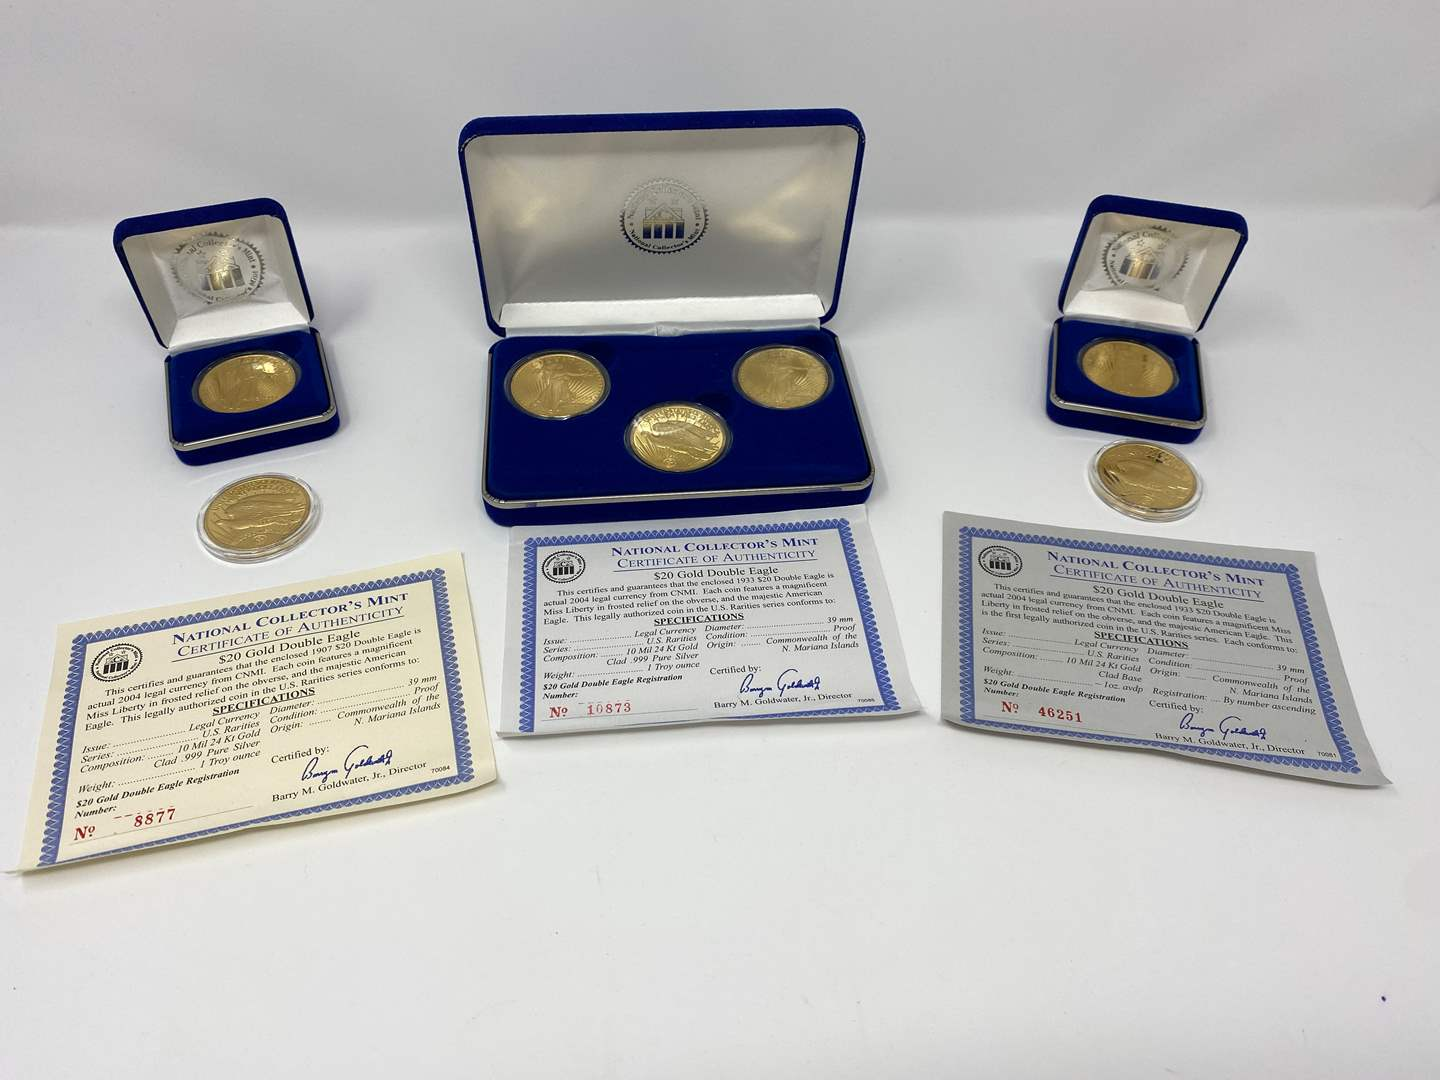 Lot # 254 - Seven 10 Mil 24kt Gold Clad, .999 Pure Silver One Troy Ounce, $20.00 Gold Double Eagles (main image)